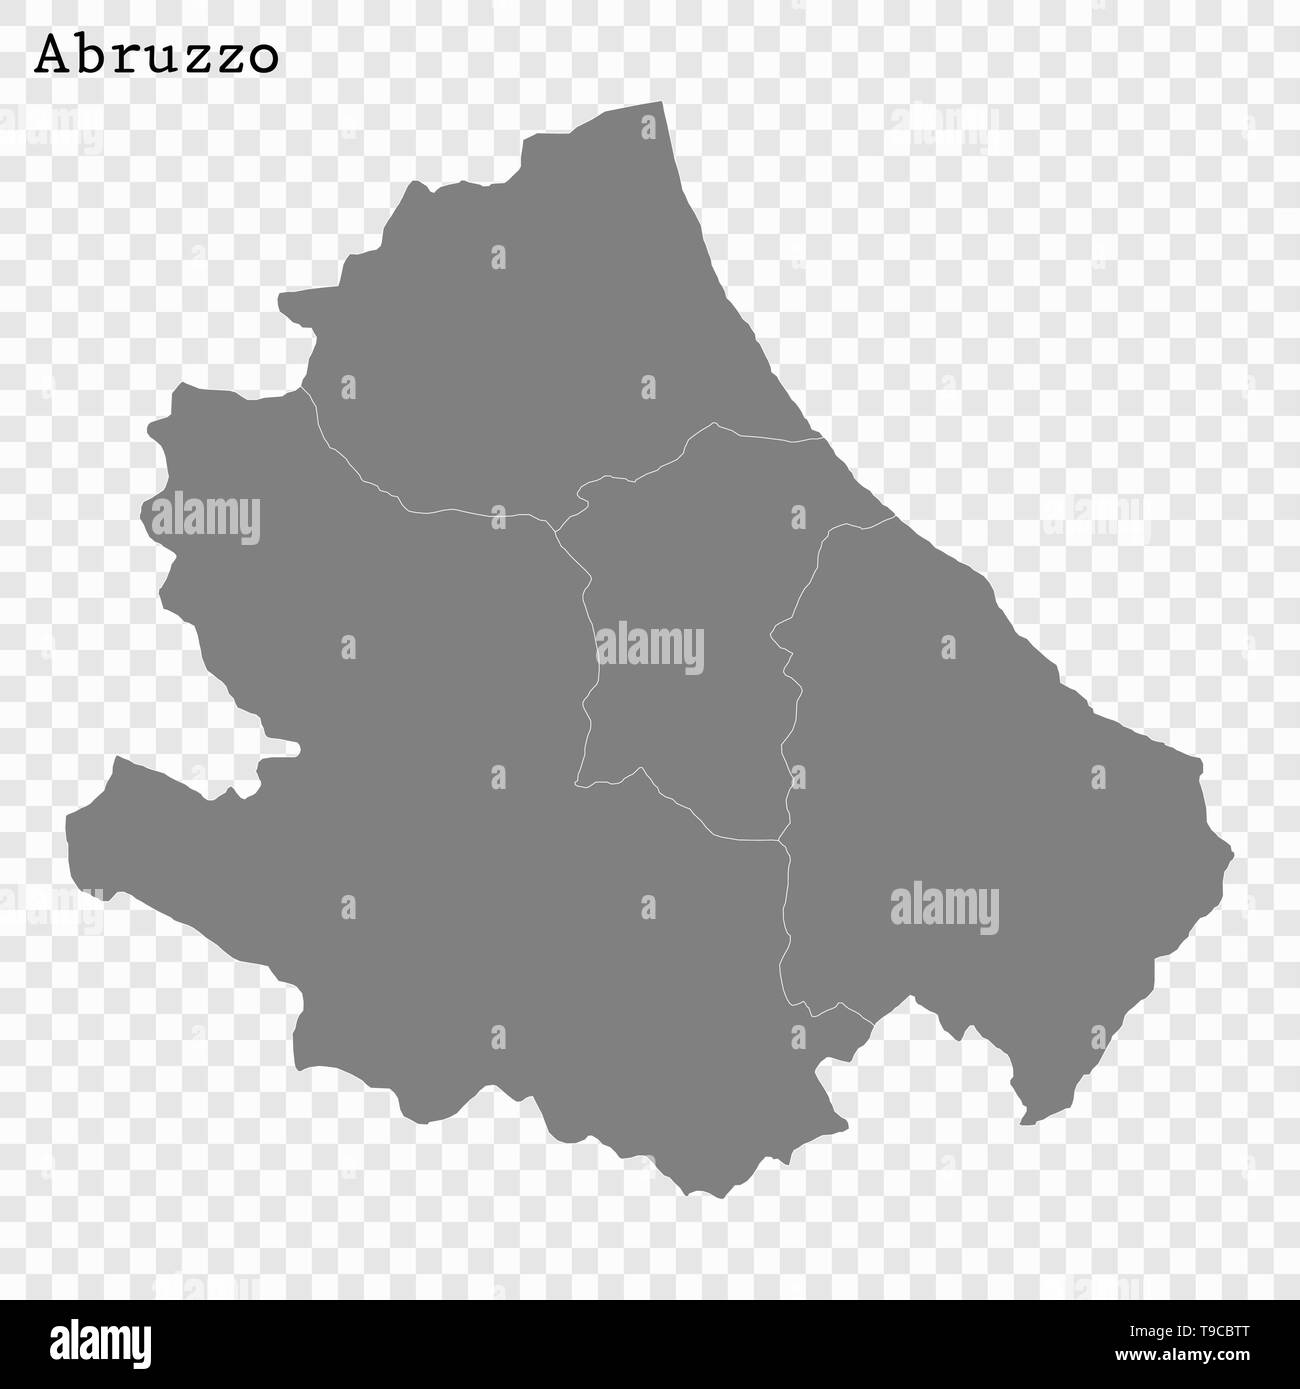 Picture of: High Quality Map Of Abruzzo Is A State Of Italy With Borders Of The Districts Stock Vector Image Art Alamy